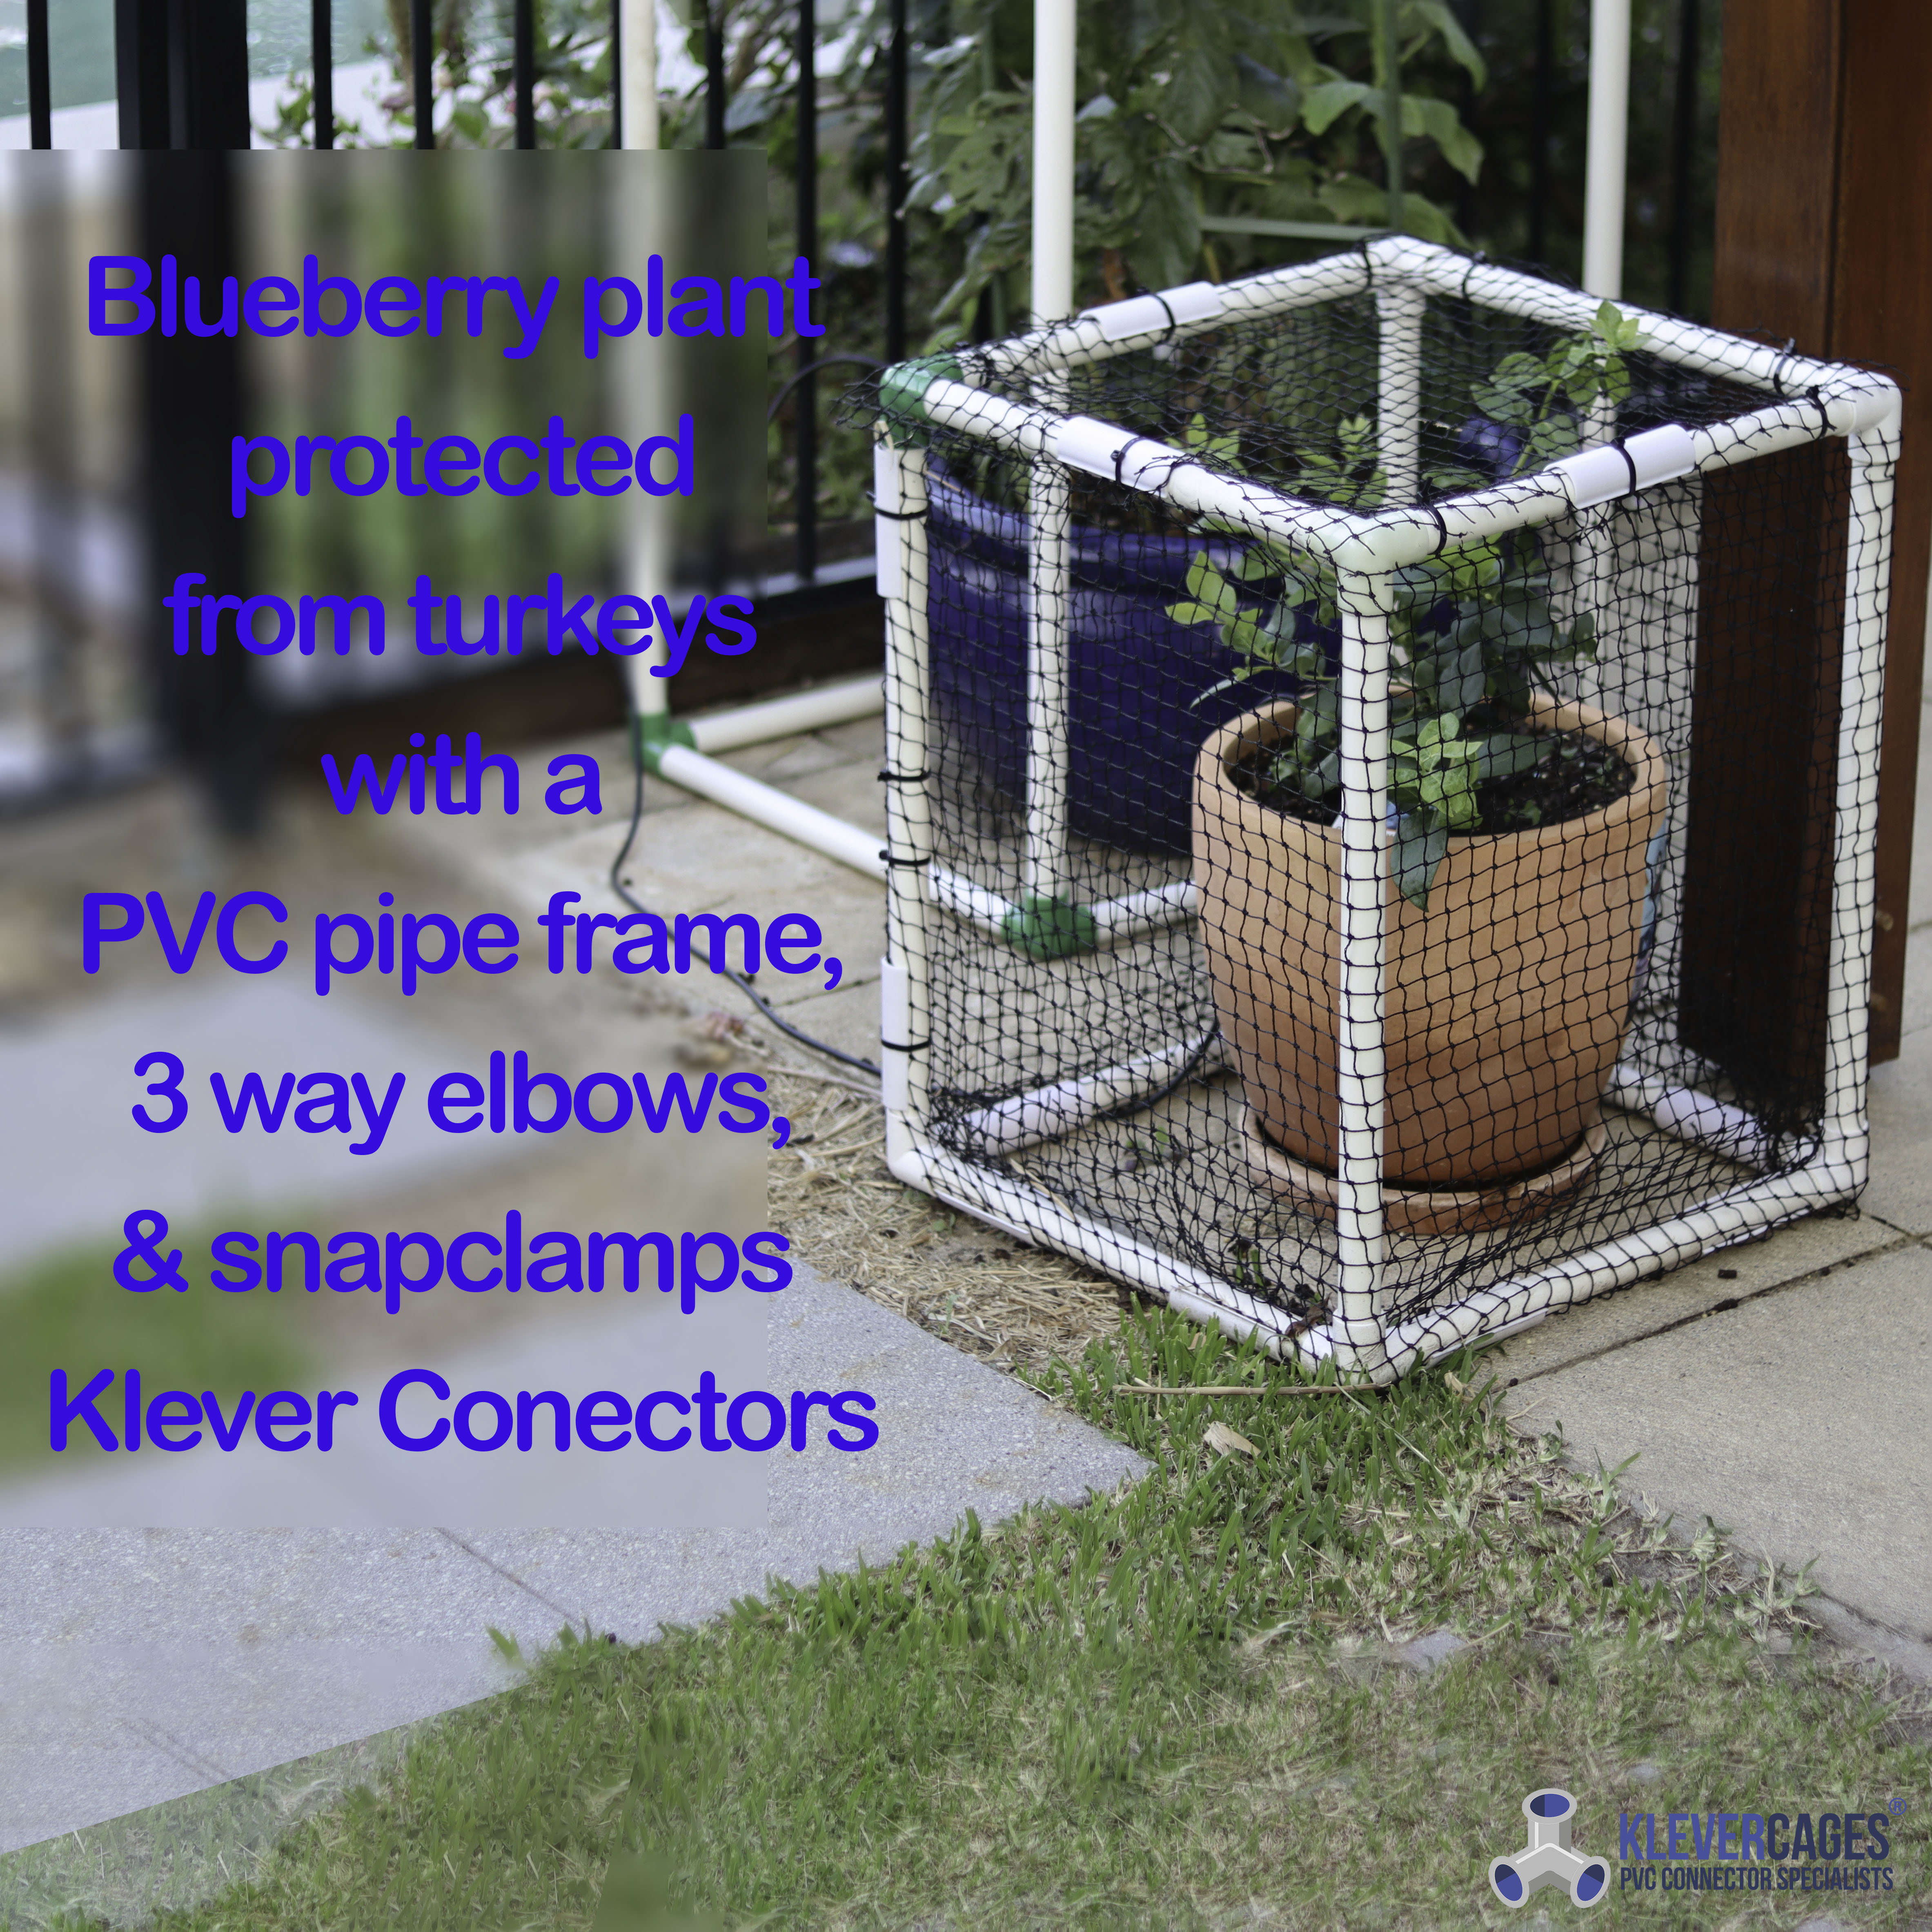 Blueberry bush growing and protected from insects and birds with heavy duty netting supported by PVC pipes and connectors from Klever Cages